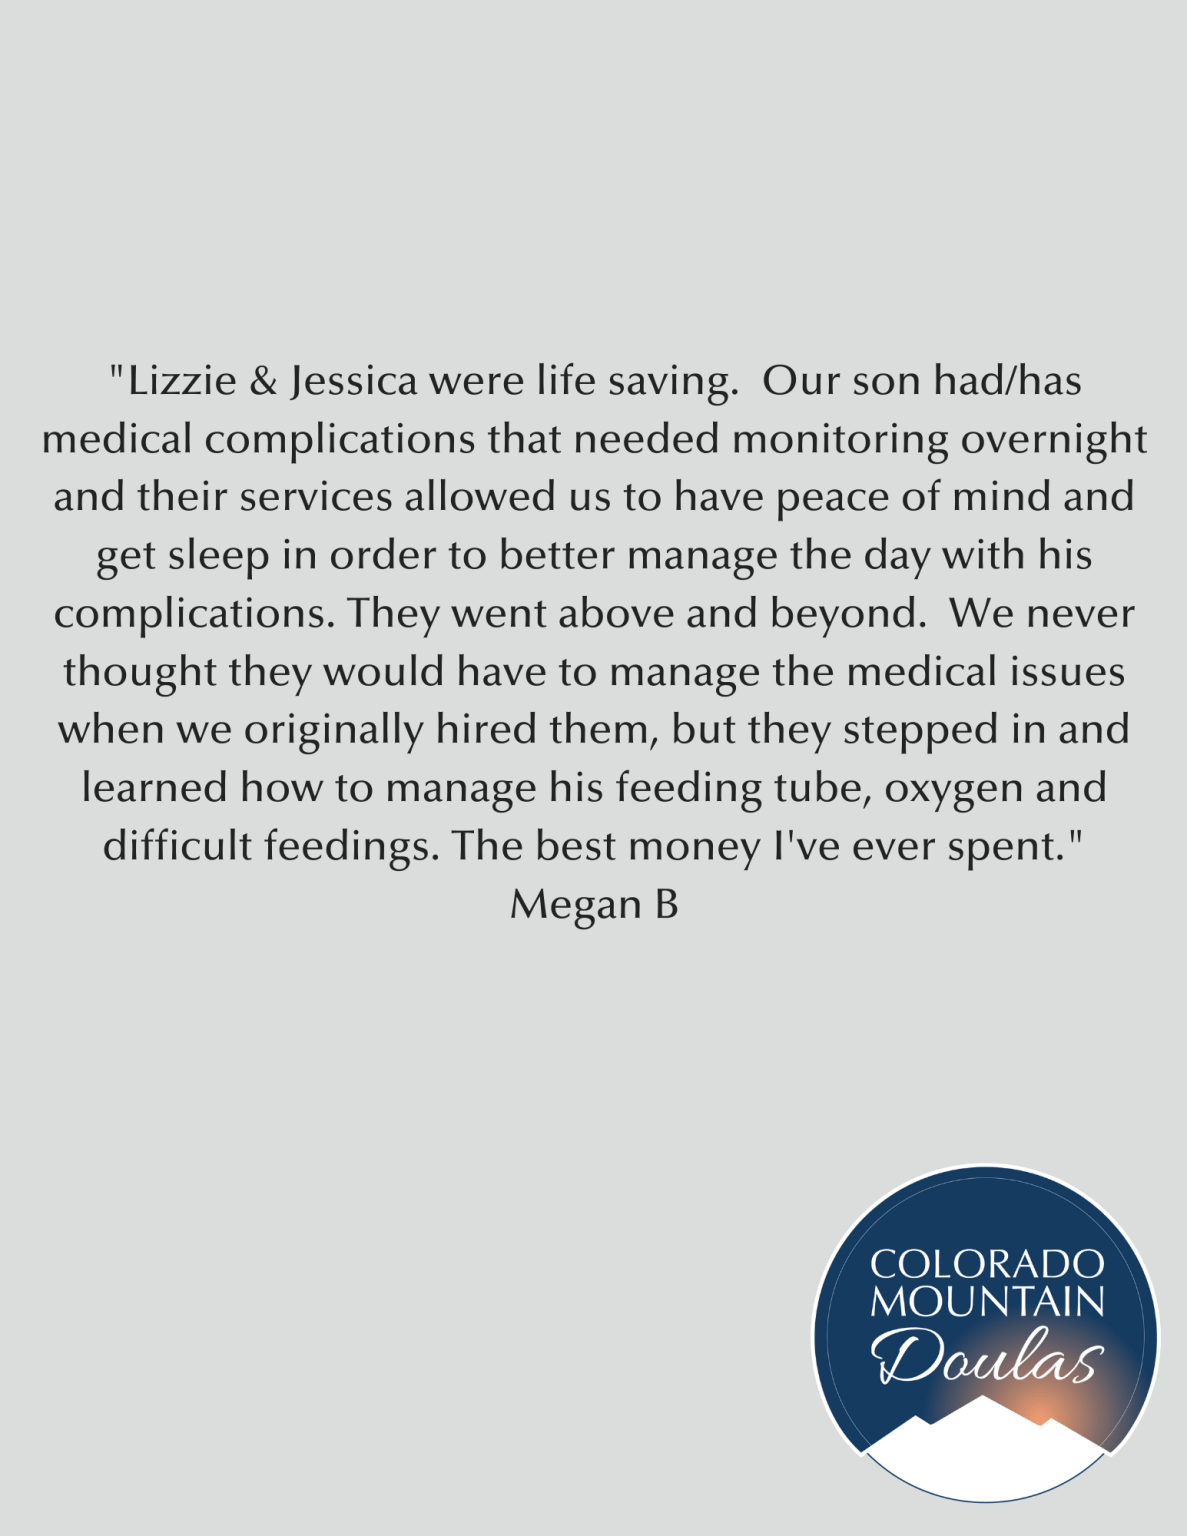 their services allowed us to have peace of mind and get sleep in order to better manage the day